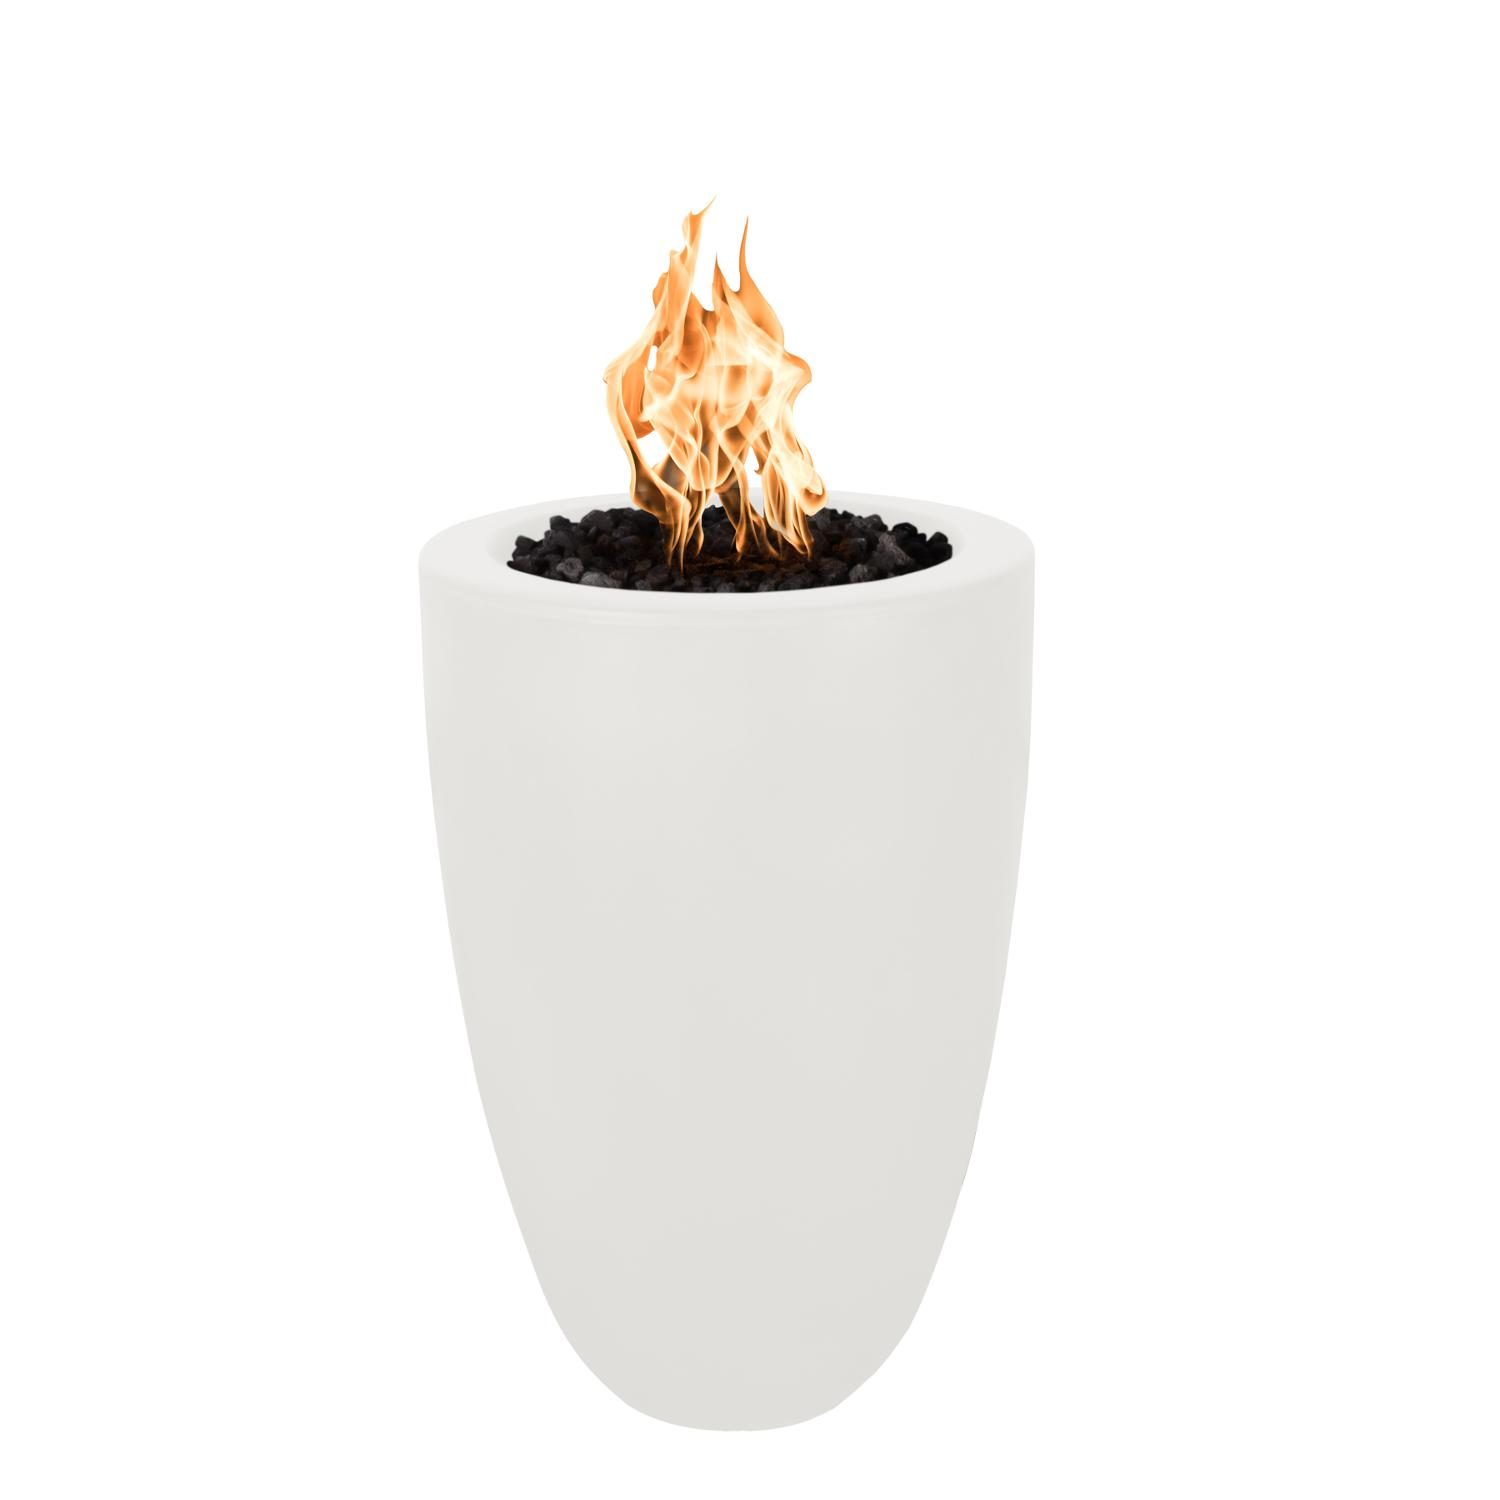 The Outdoor Plus Top Fires by Castillo 33 Natural Gas Fire Pillar - Limestone Concrete - Match Light - No Access Door - OPT-CST022-LIM-NG